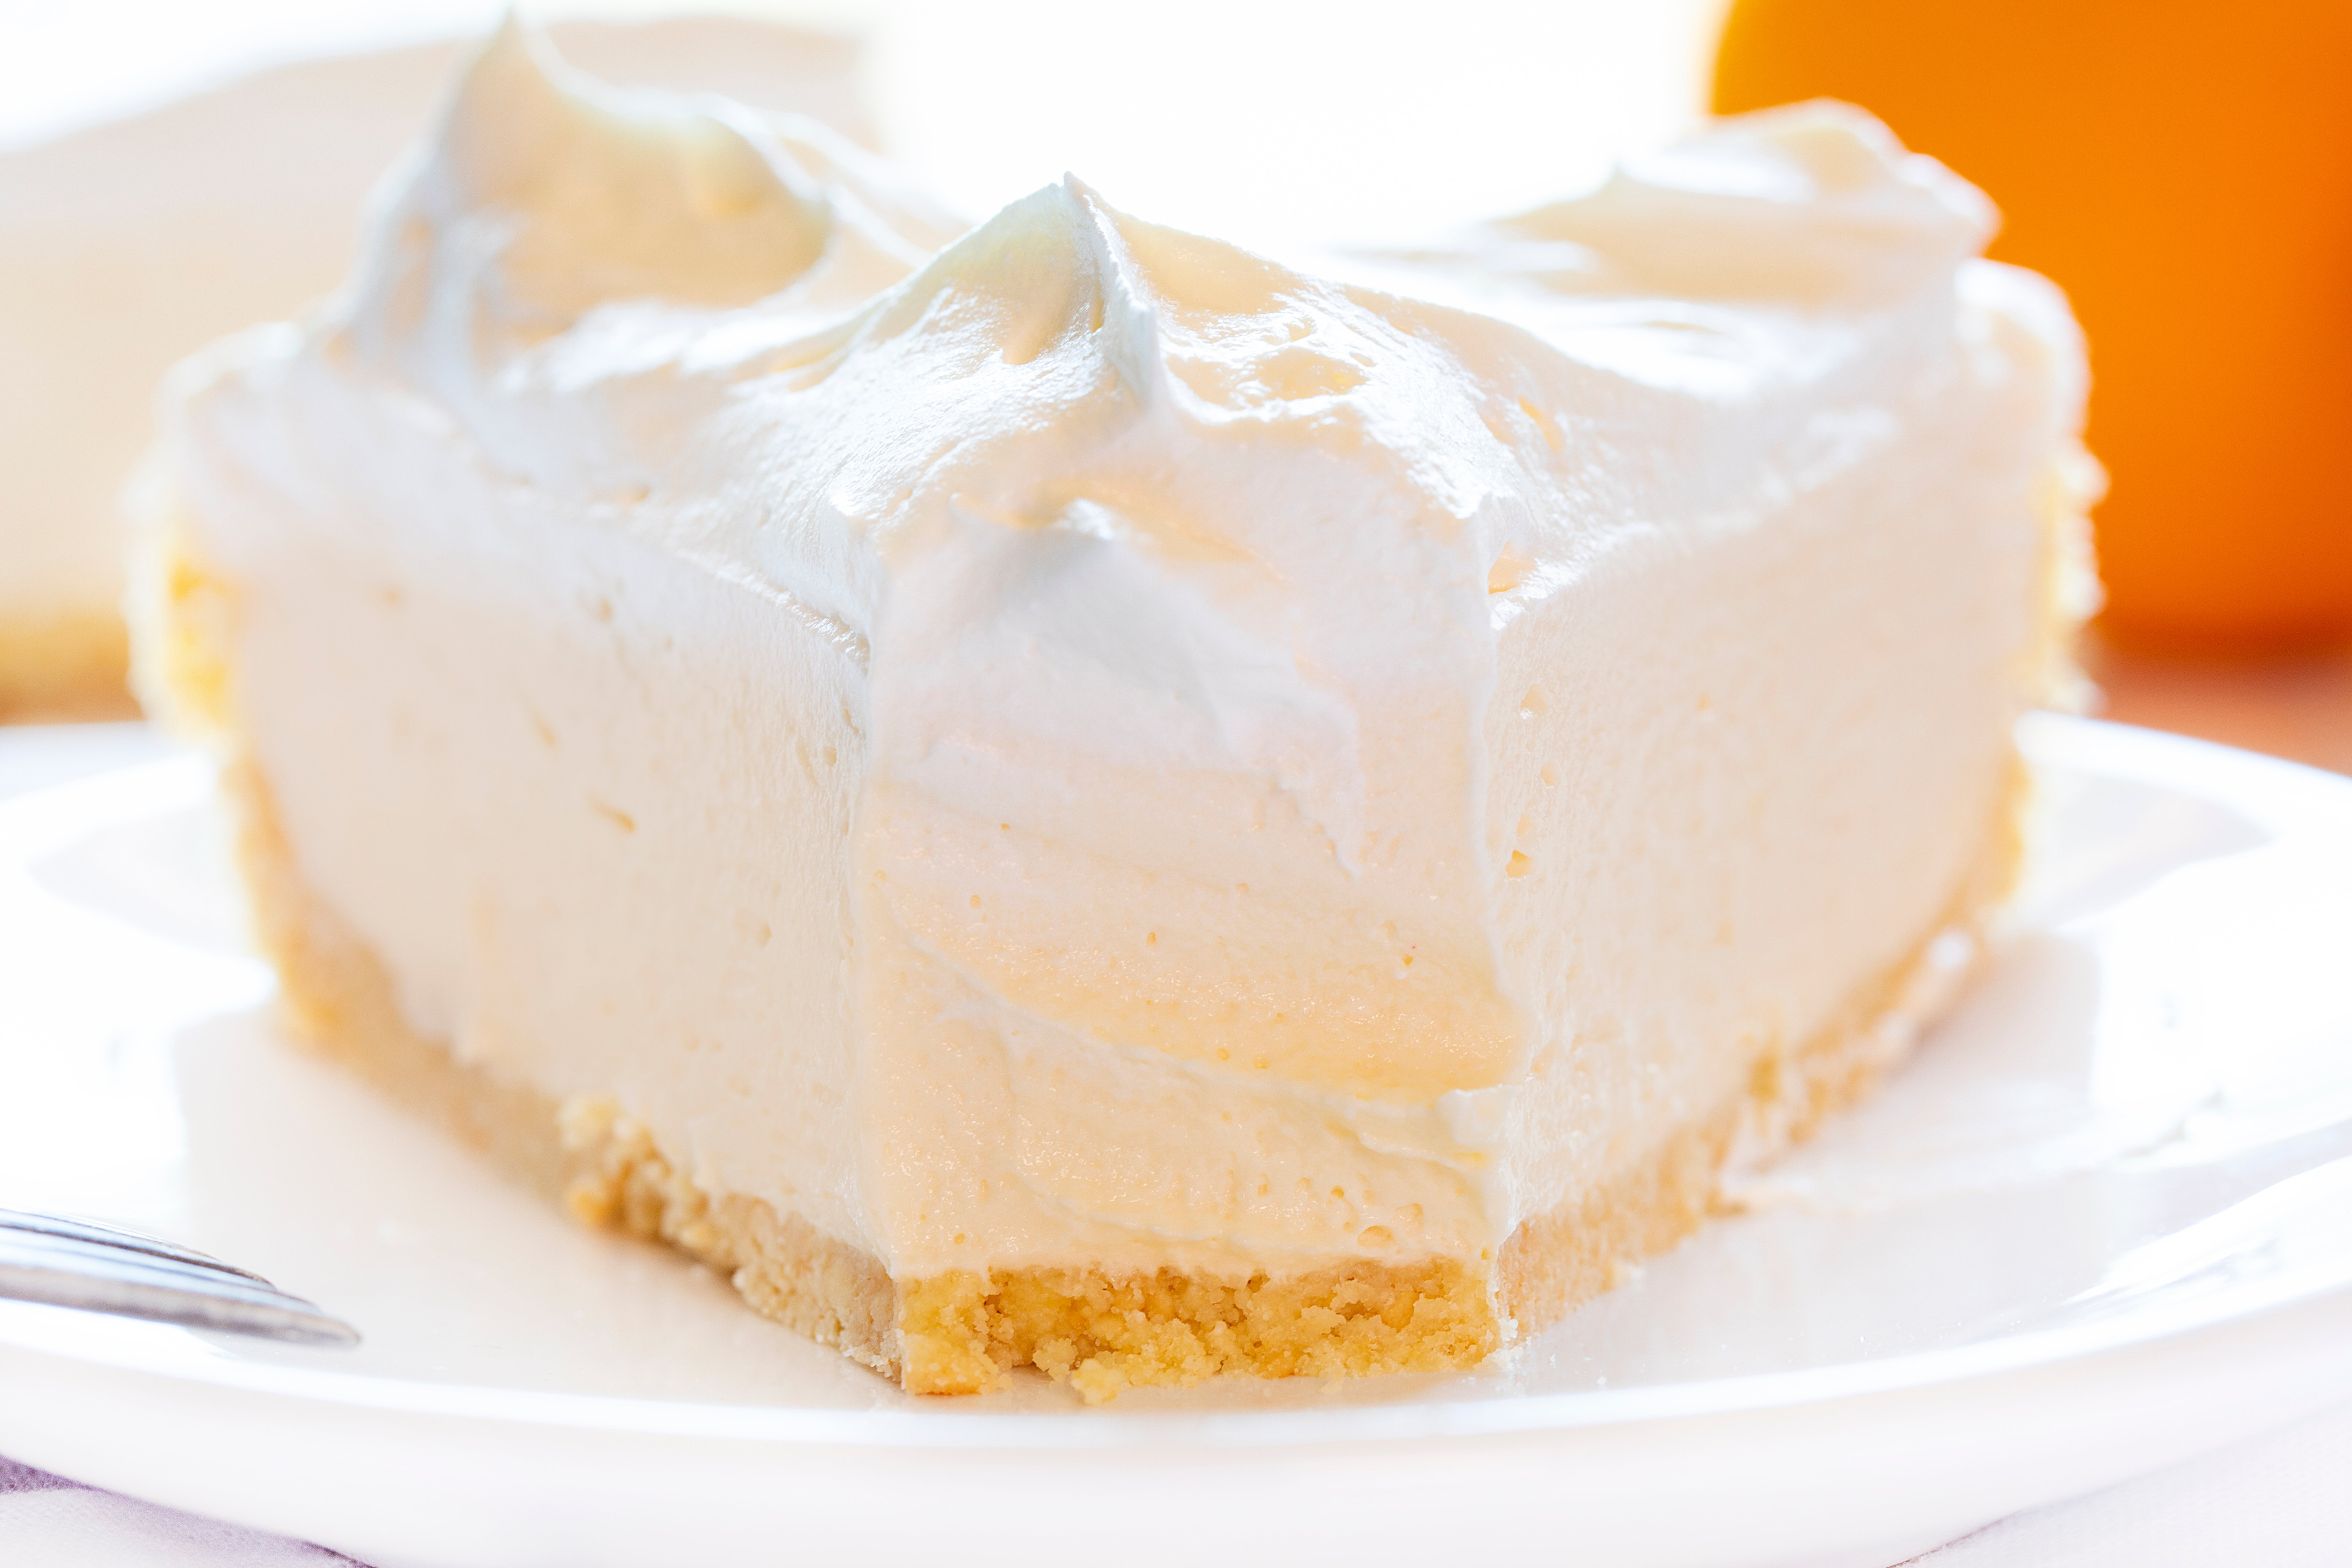 Orange Creamsicle Pie Recipe